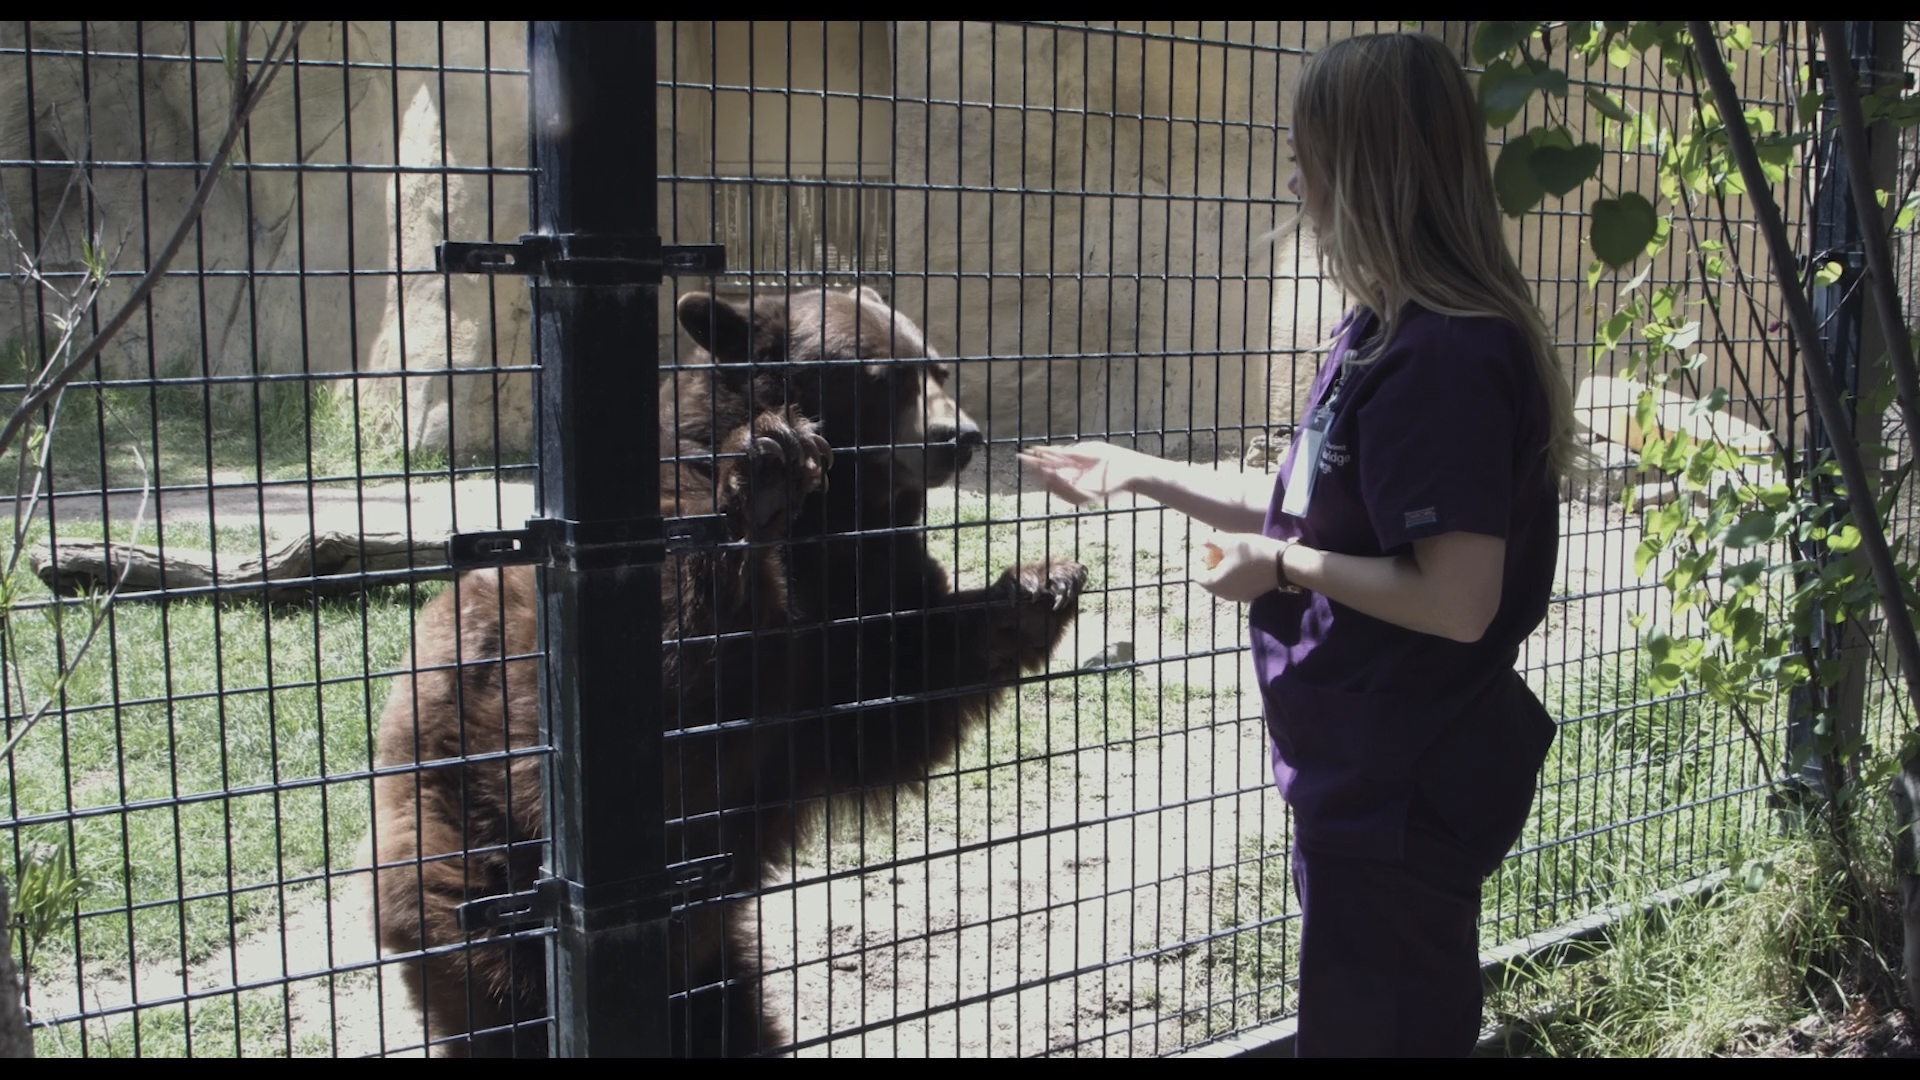 Vet Tech Student Volunteered with the OC Zoo to Develop Better Animal Care